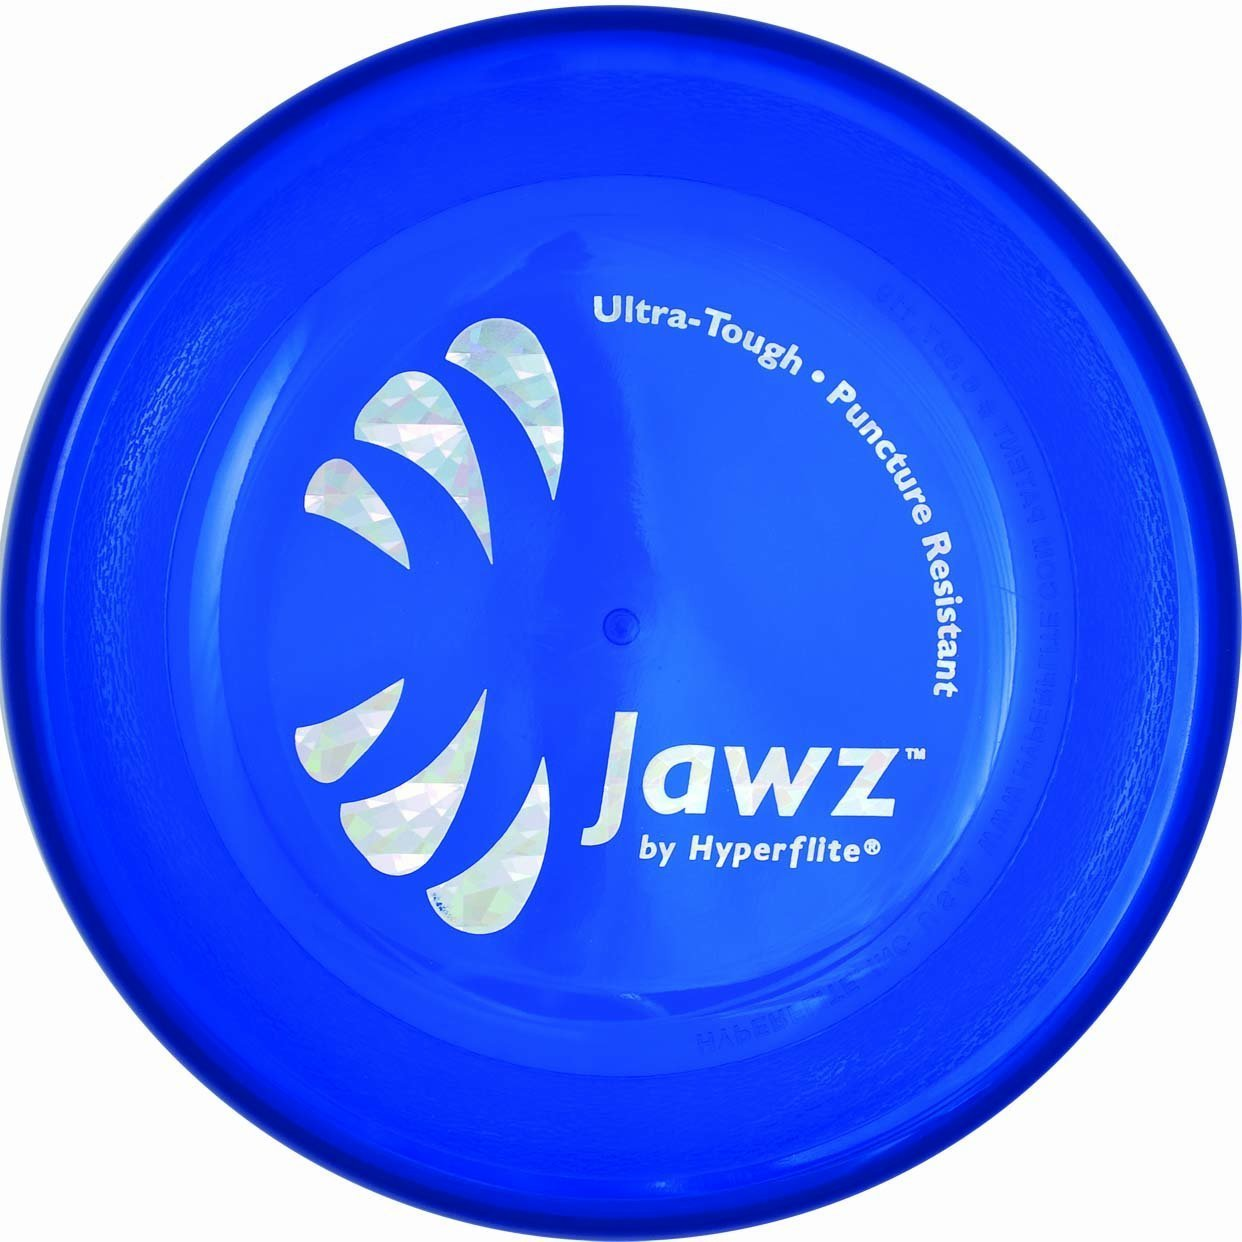 Hyperflite Jawz  Blueberry 2 Pack Competition Dog Disc 8.75 Inch, Worlds Toughest, Best Flying, Puncture Resistant, Dog Frisbee, Not a Toy Competition Grade, Outdoor Flying Disc Training by Hyperflite